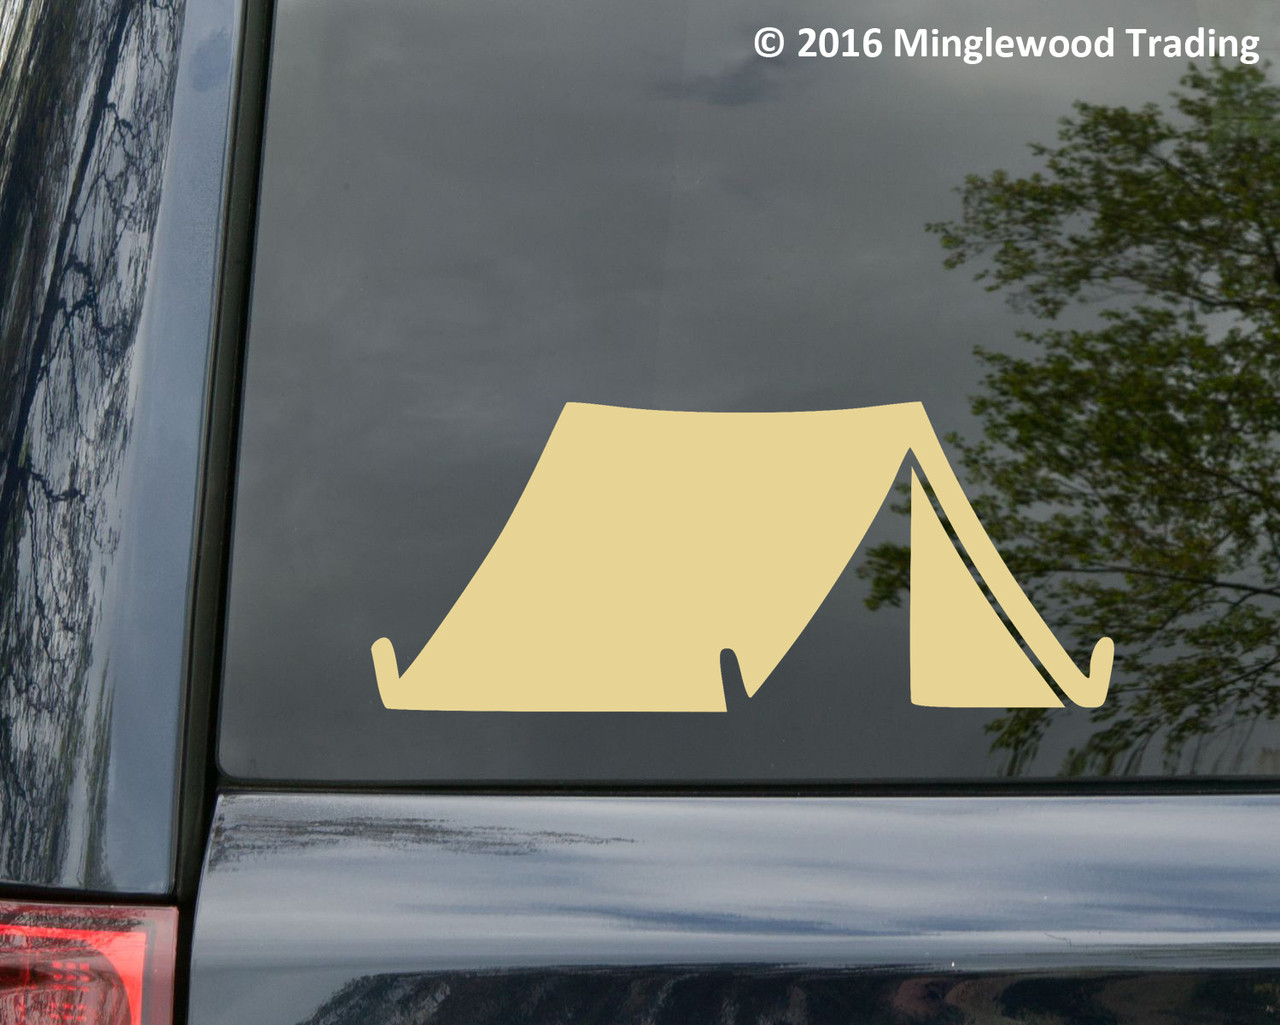 TENT Vinyl Decal Sticker - Camping Outdoors Campground Hiking Camper